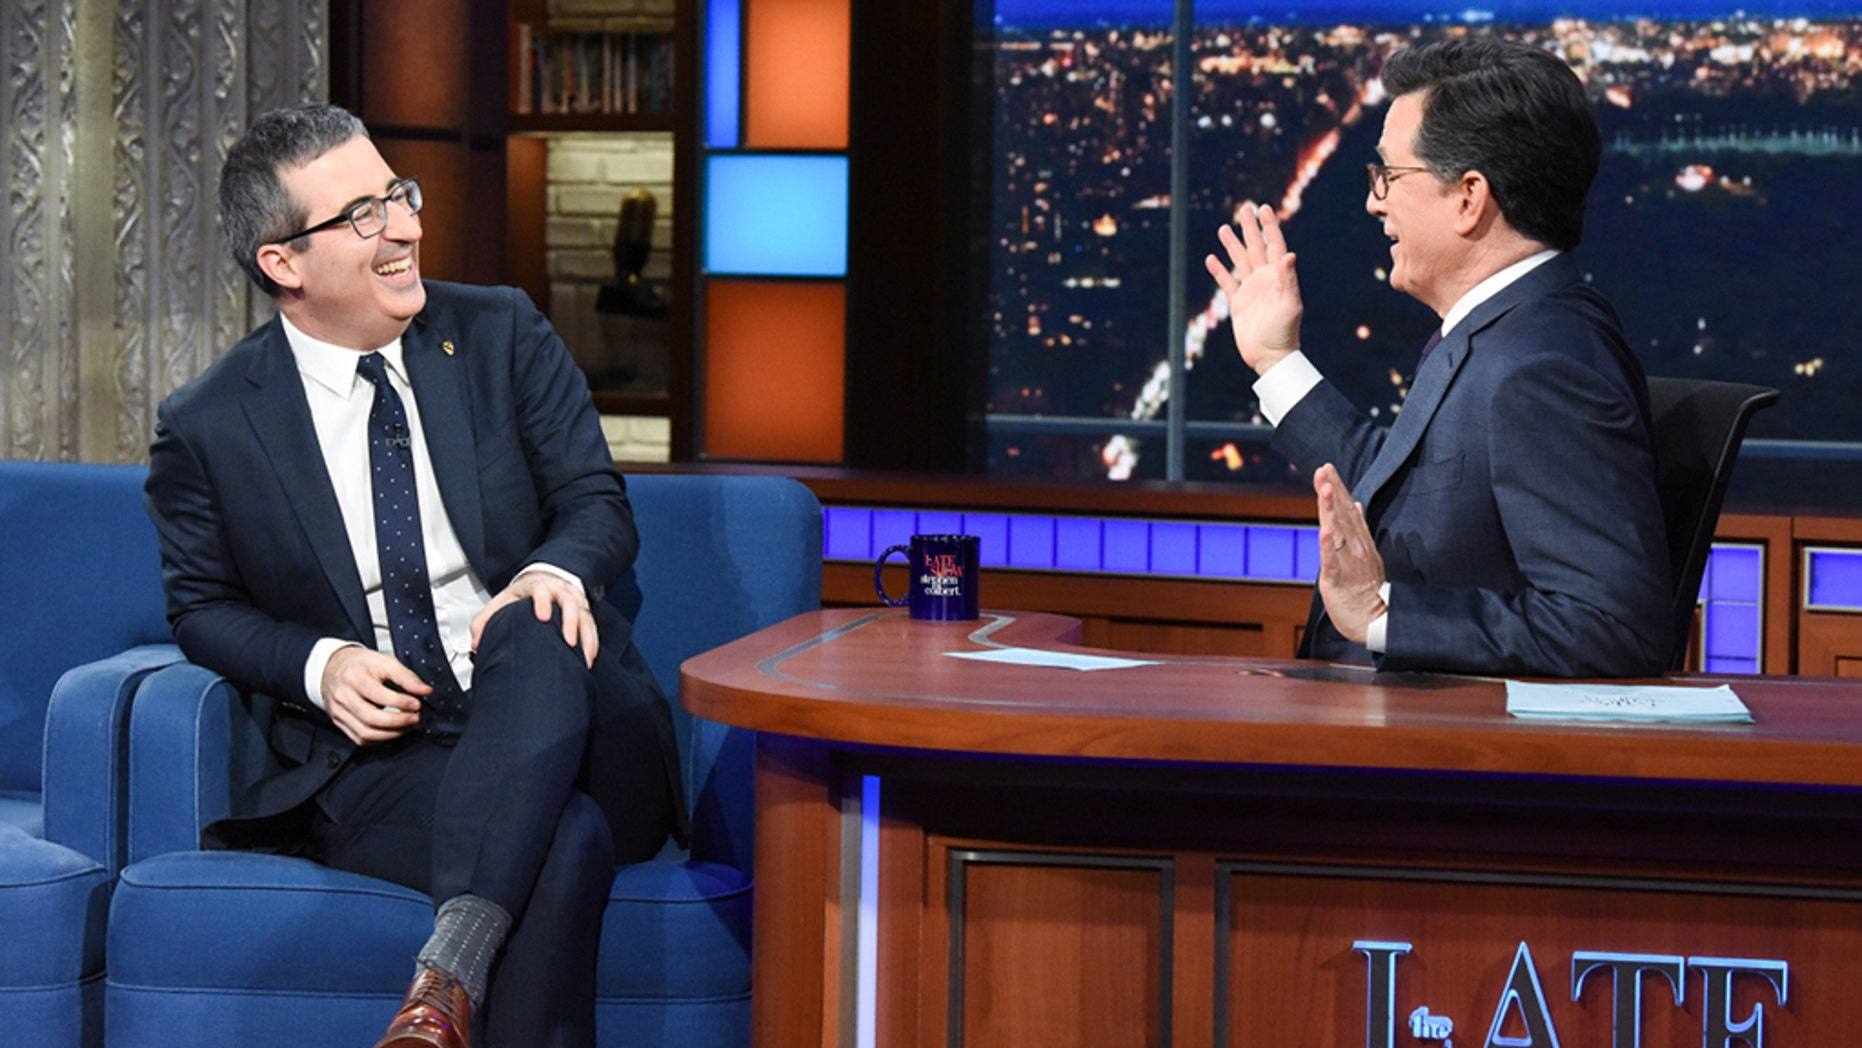 The Late Show with Stephen Colbert and guest John Oliver during Monday's February 11, 2019 show. Photo: Scott Kowalchyk/CBS